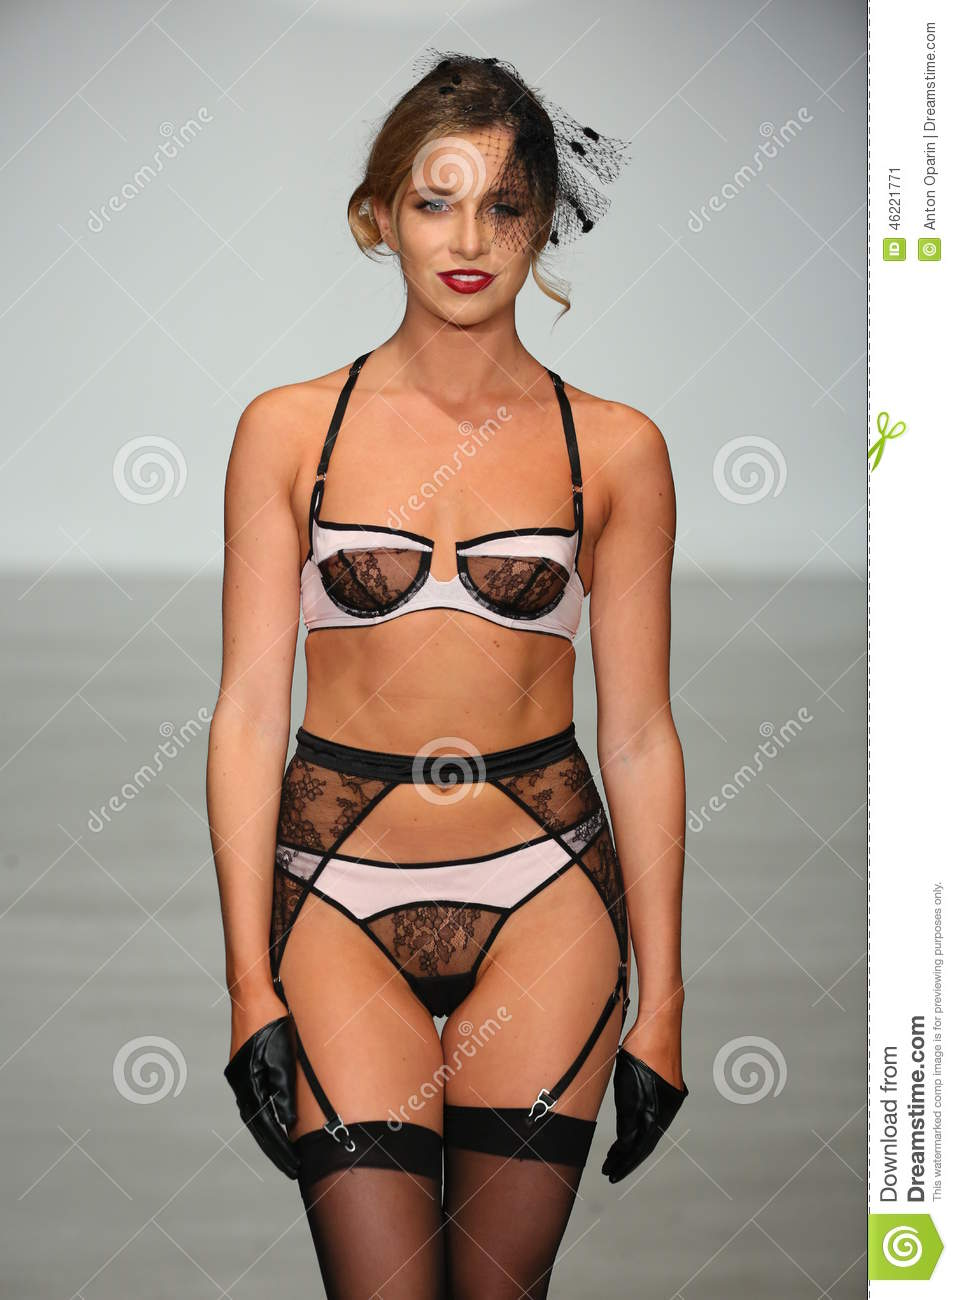 Lingerie fashion model